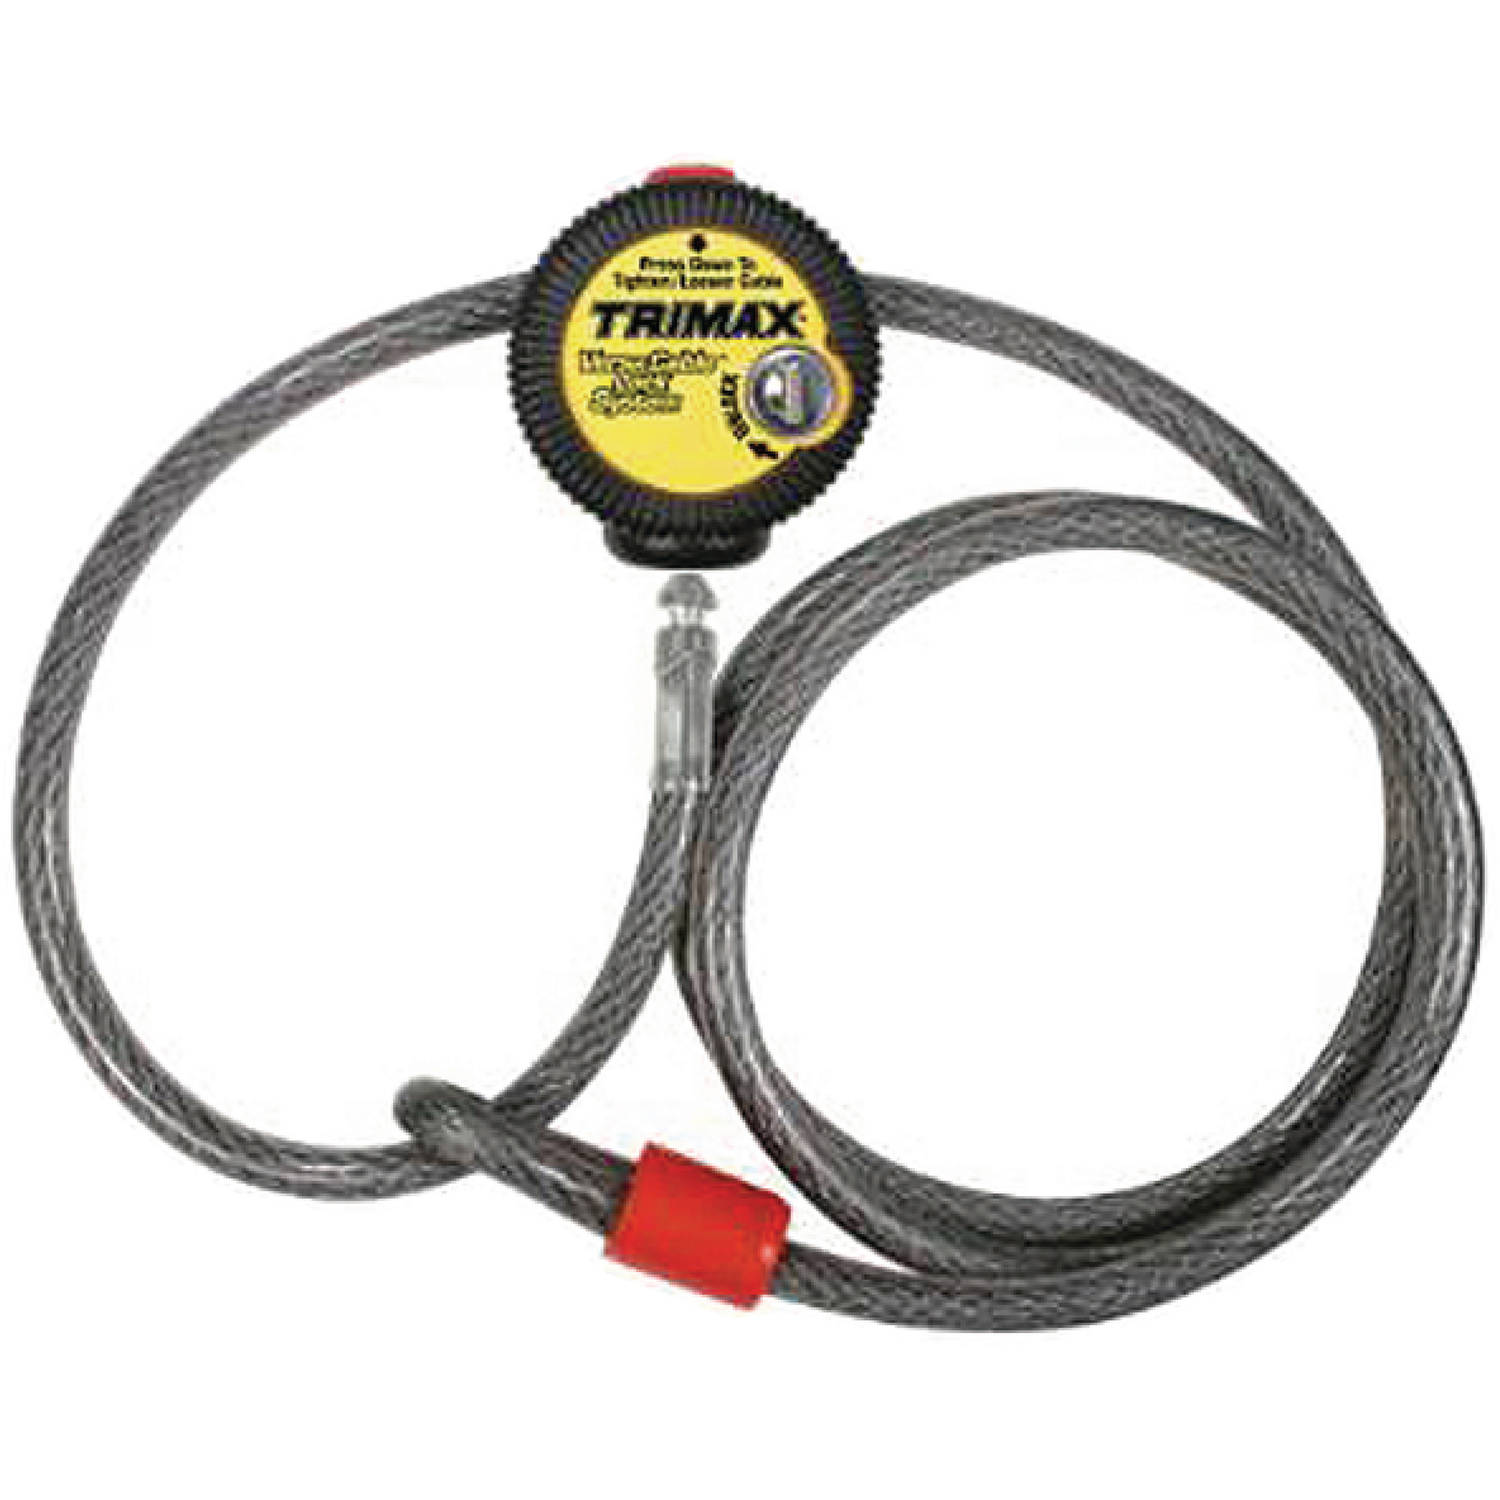 Trimax VMAX6 6' x 10mm Multi-Use Versatile Cable Lock 6' x 10mm by Trimax